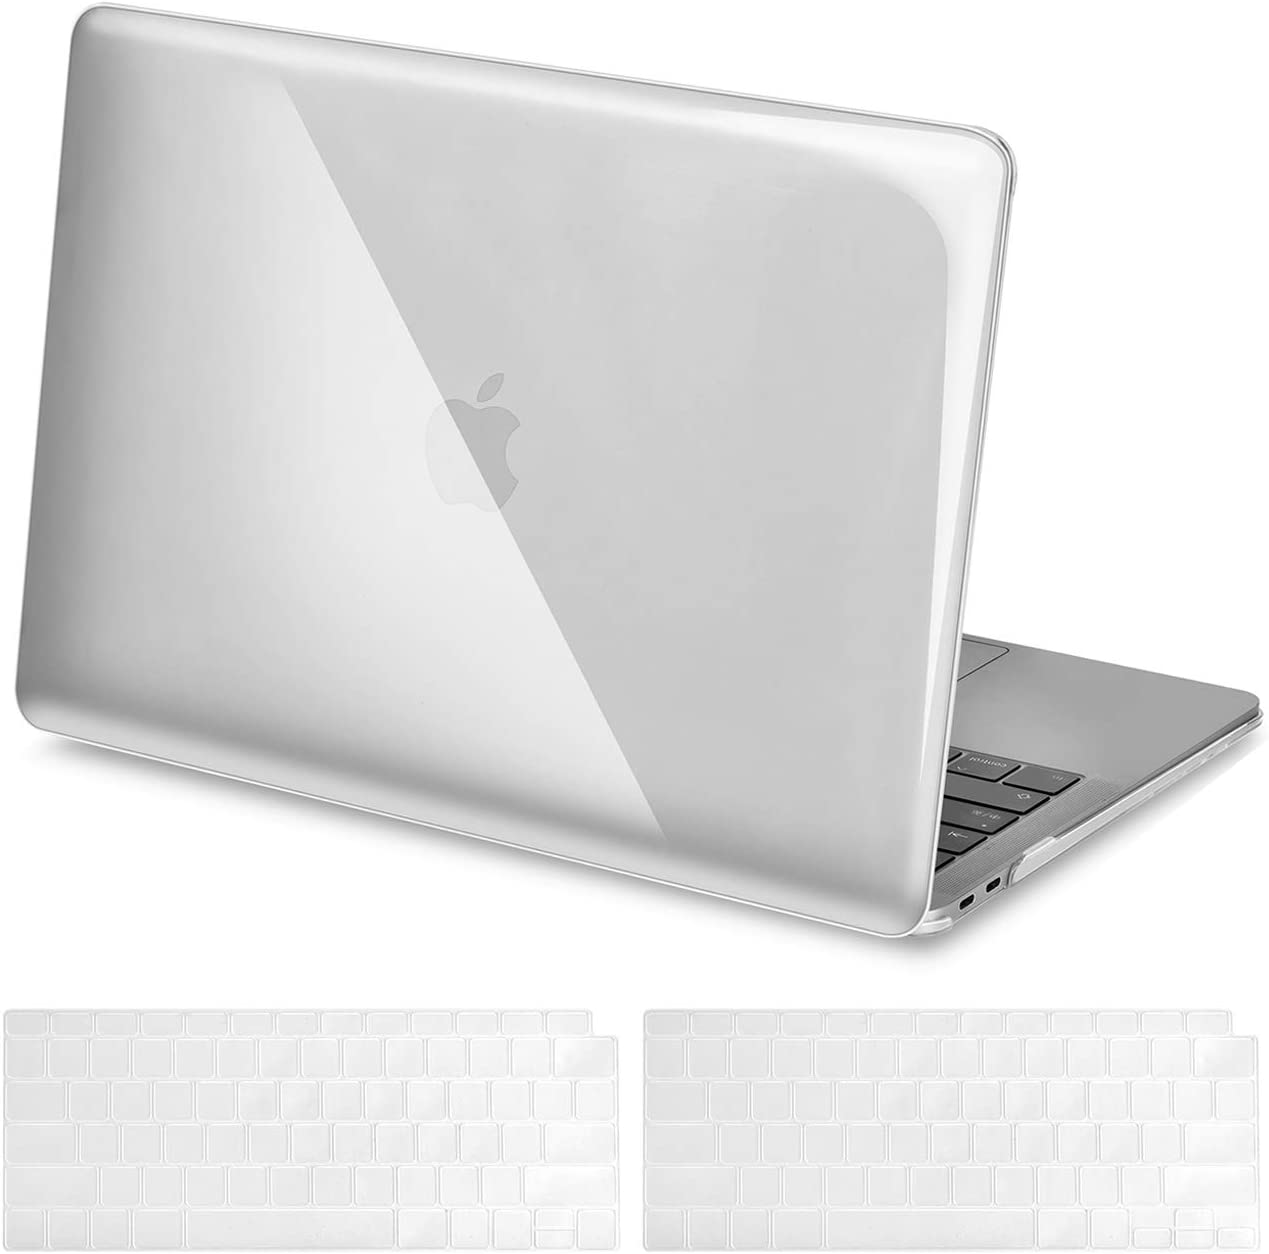 RICNUS Laptop Case for MacBook Air 13 Inch (Touch ID) 2020/2019/2018 (Model A2179/A1932) Plastic Hard Shell Cover Compatible Newest MacBook Air 13 inch.(Transparent)